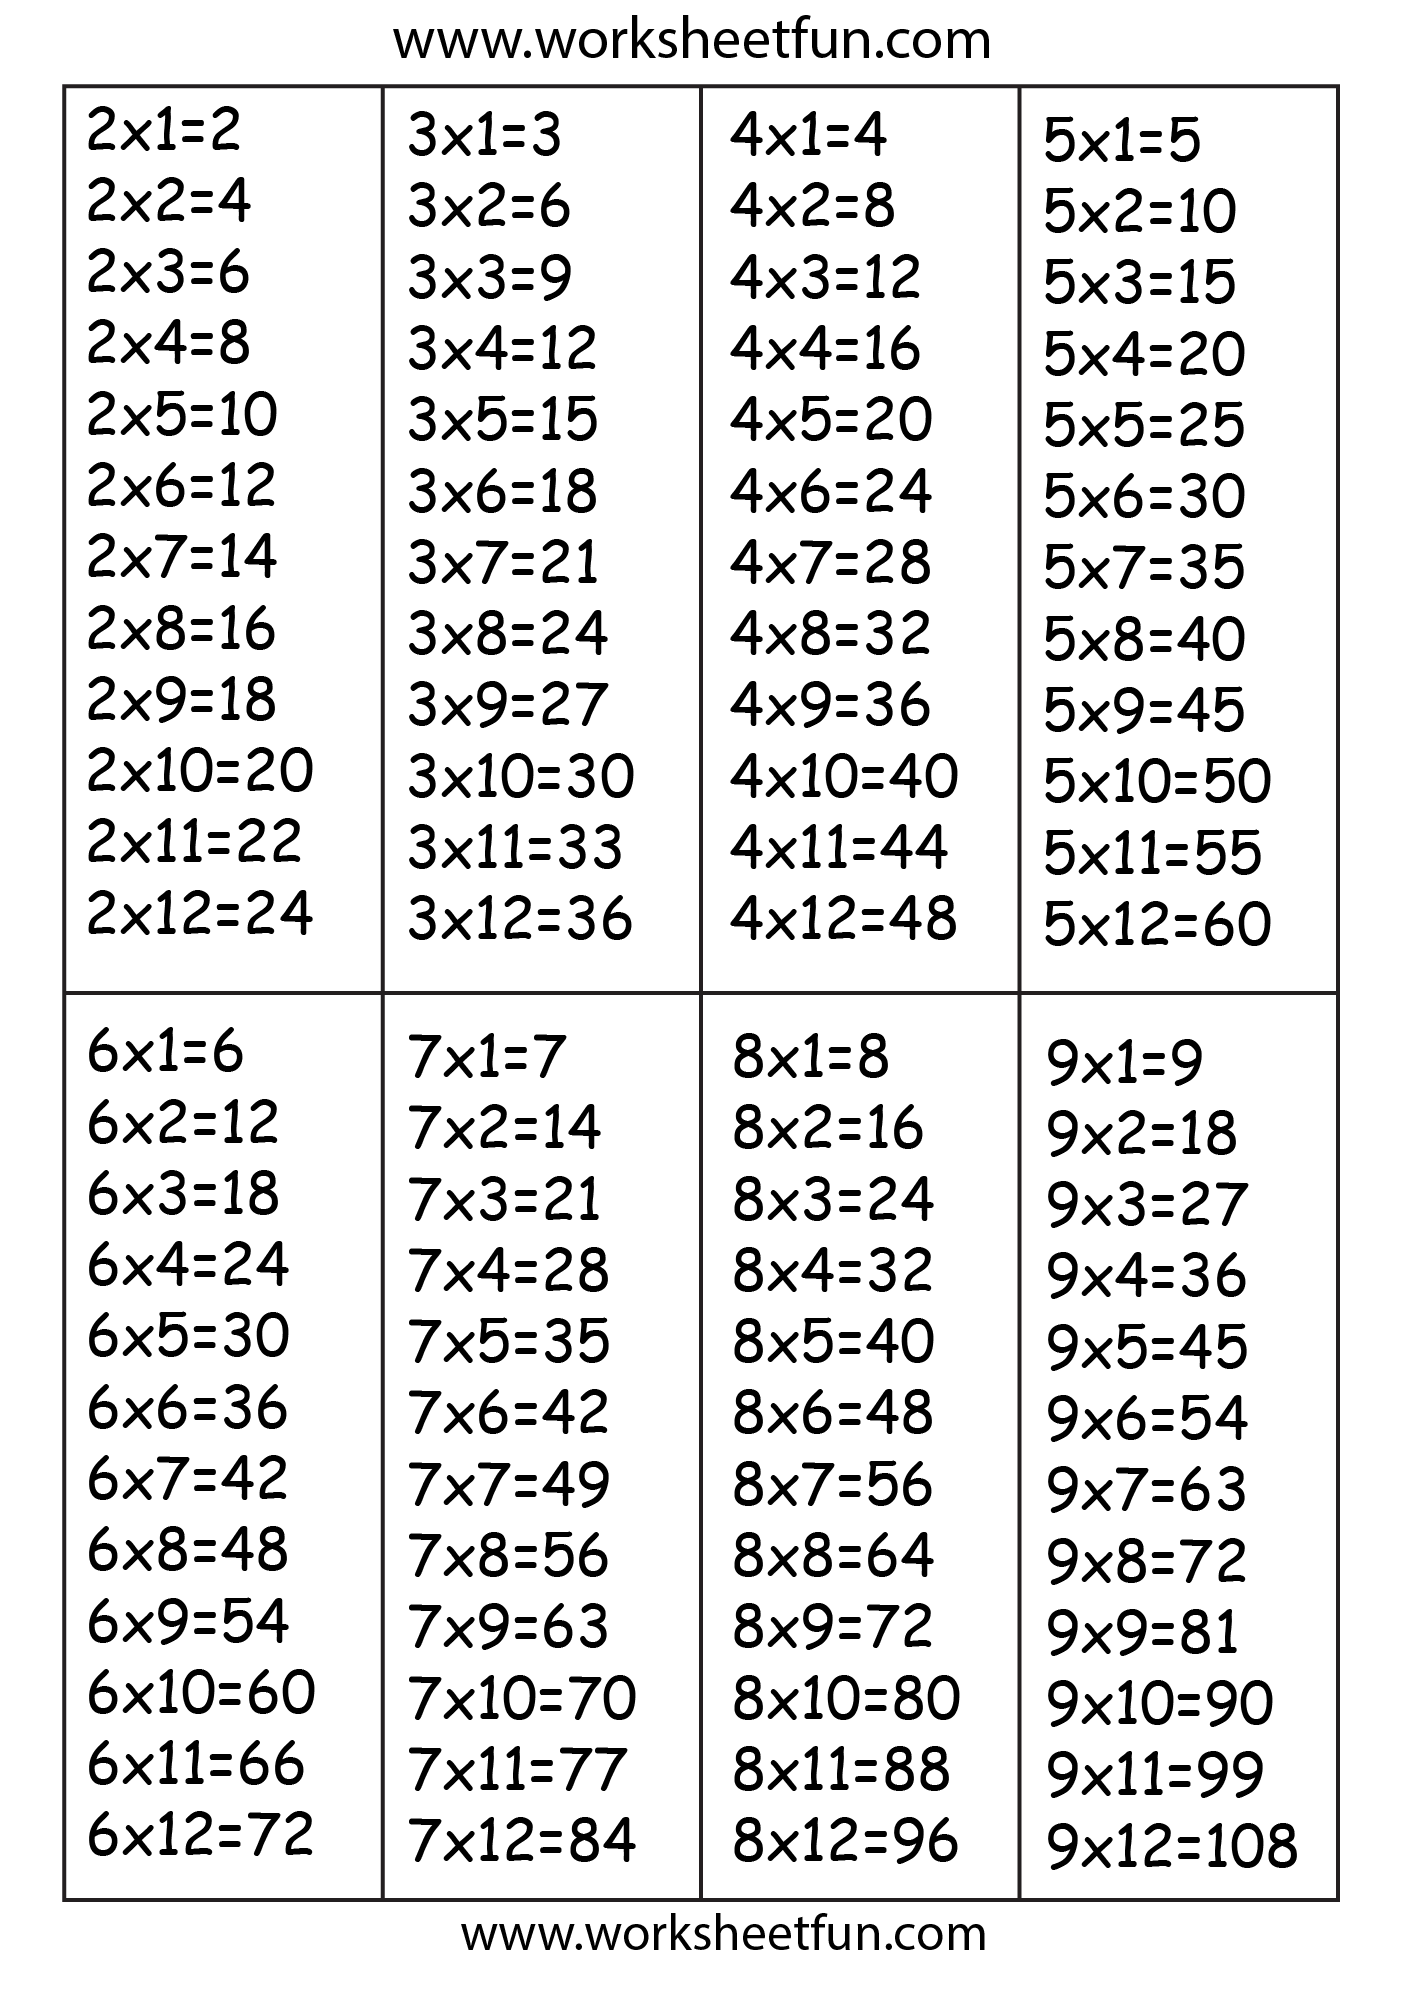 Times Tables FREE Printable Worksheets Worksheetfun – Multiplication Table Worksheet